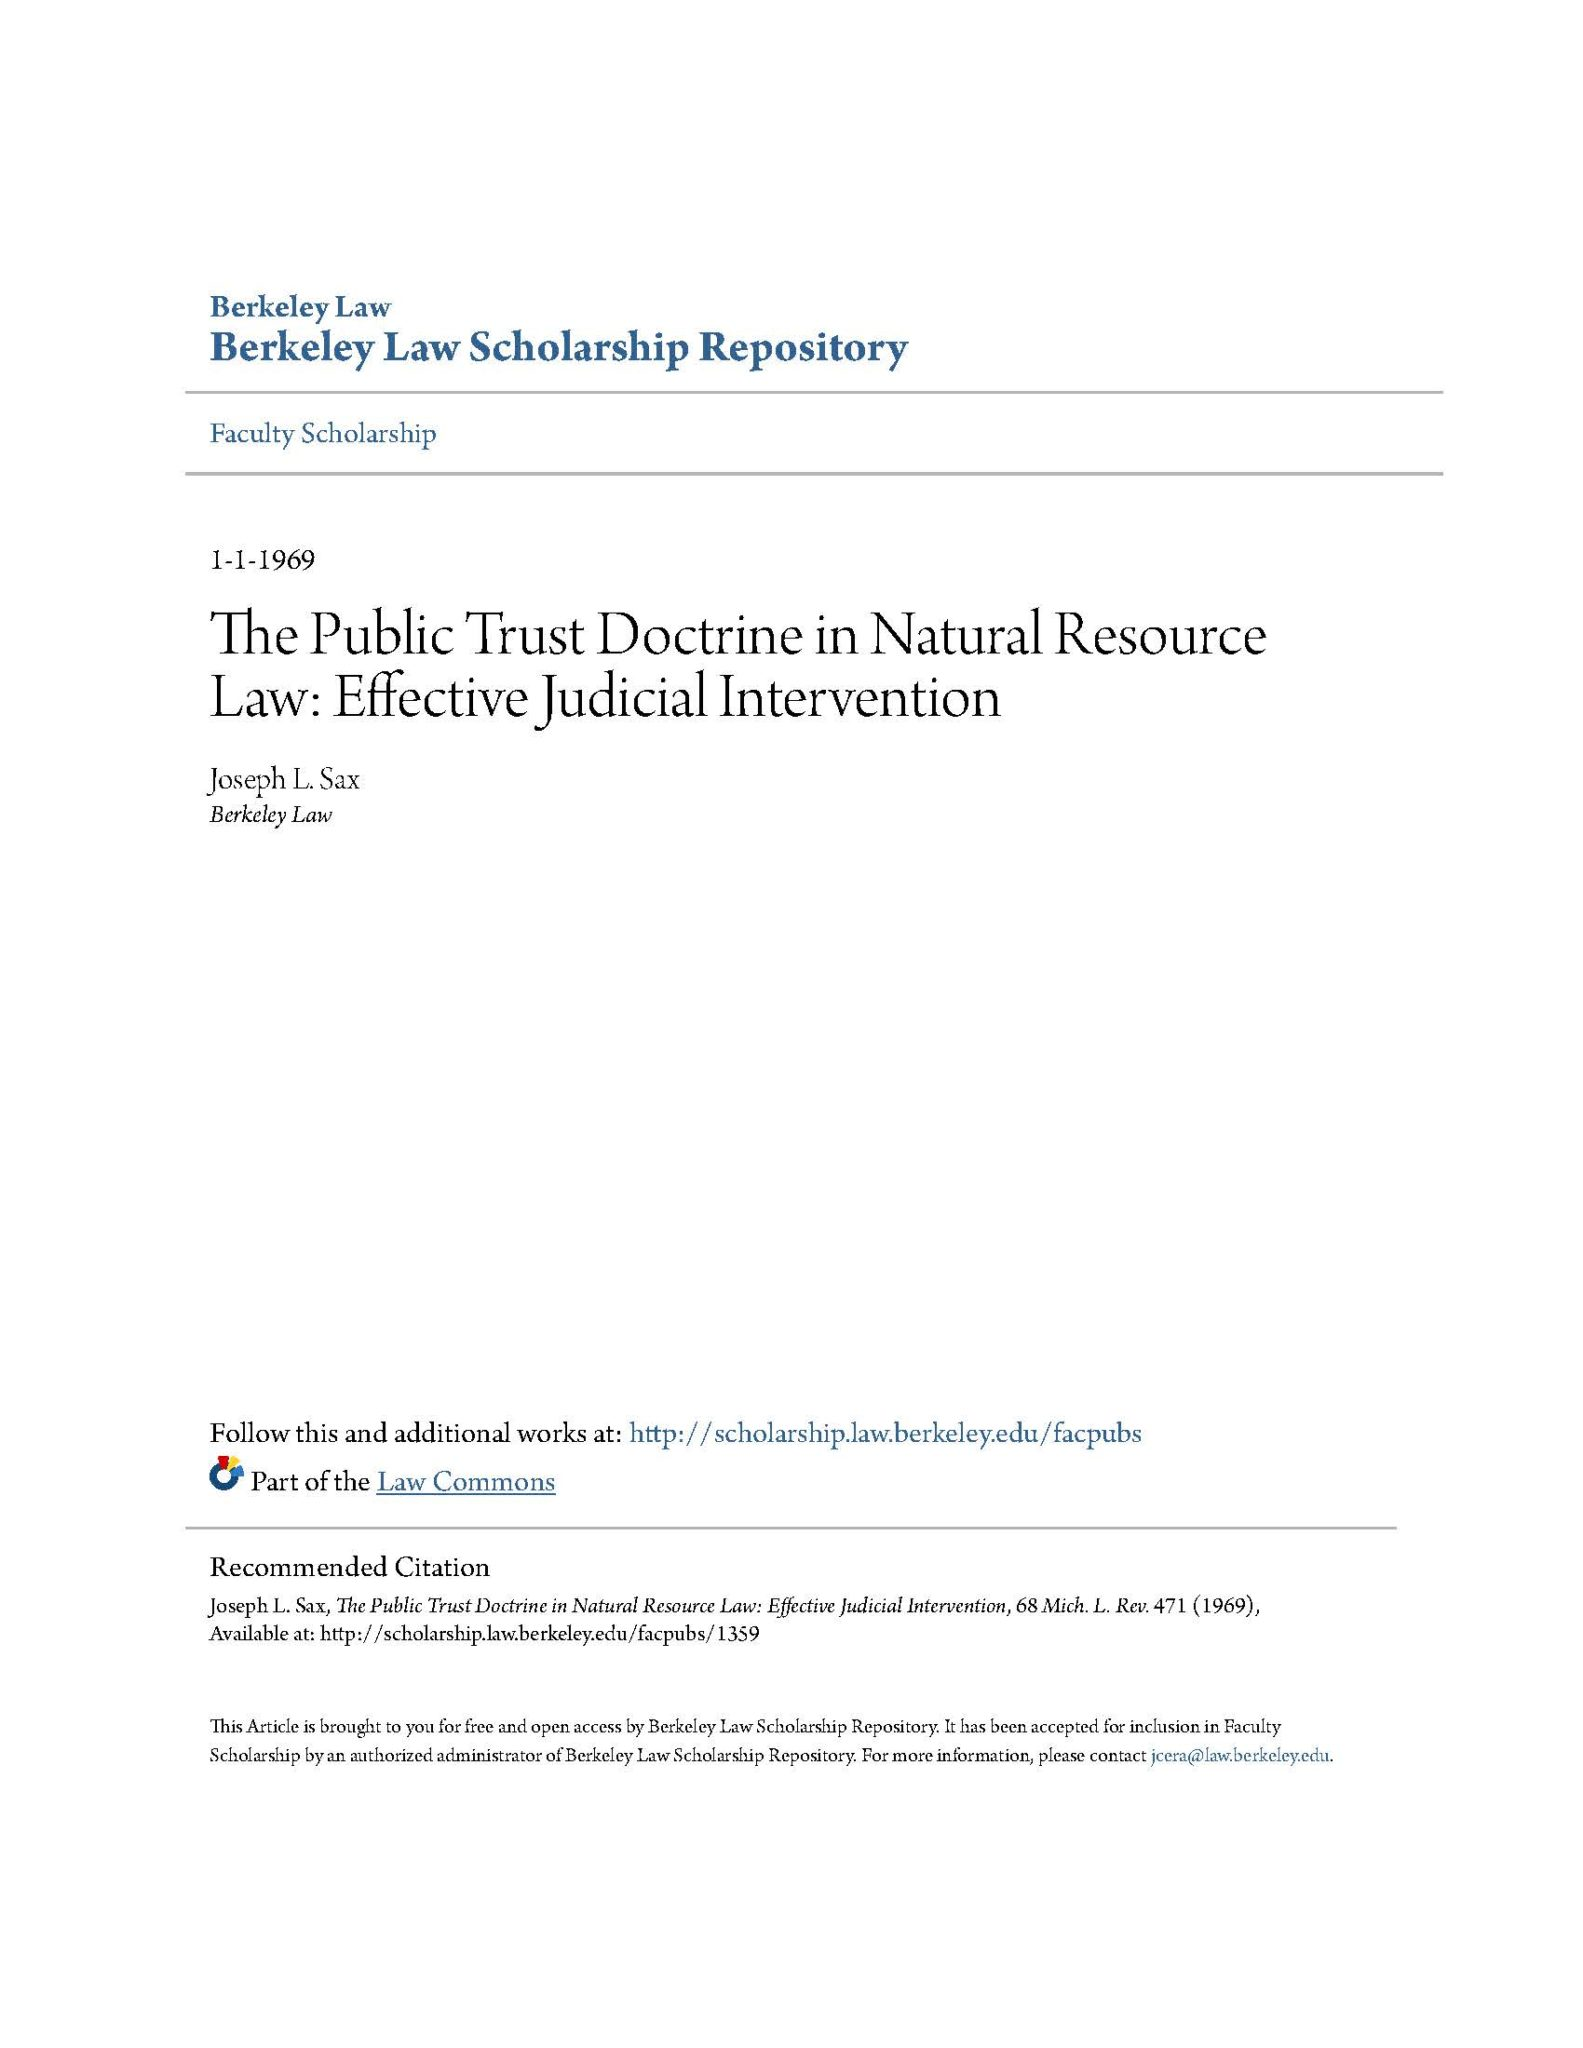 The Public Trust Doctrine in Natural Resource Law: Effective